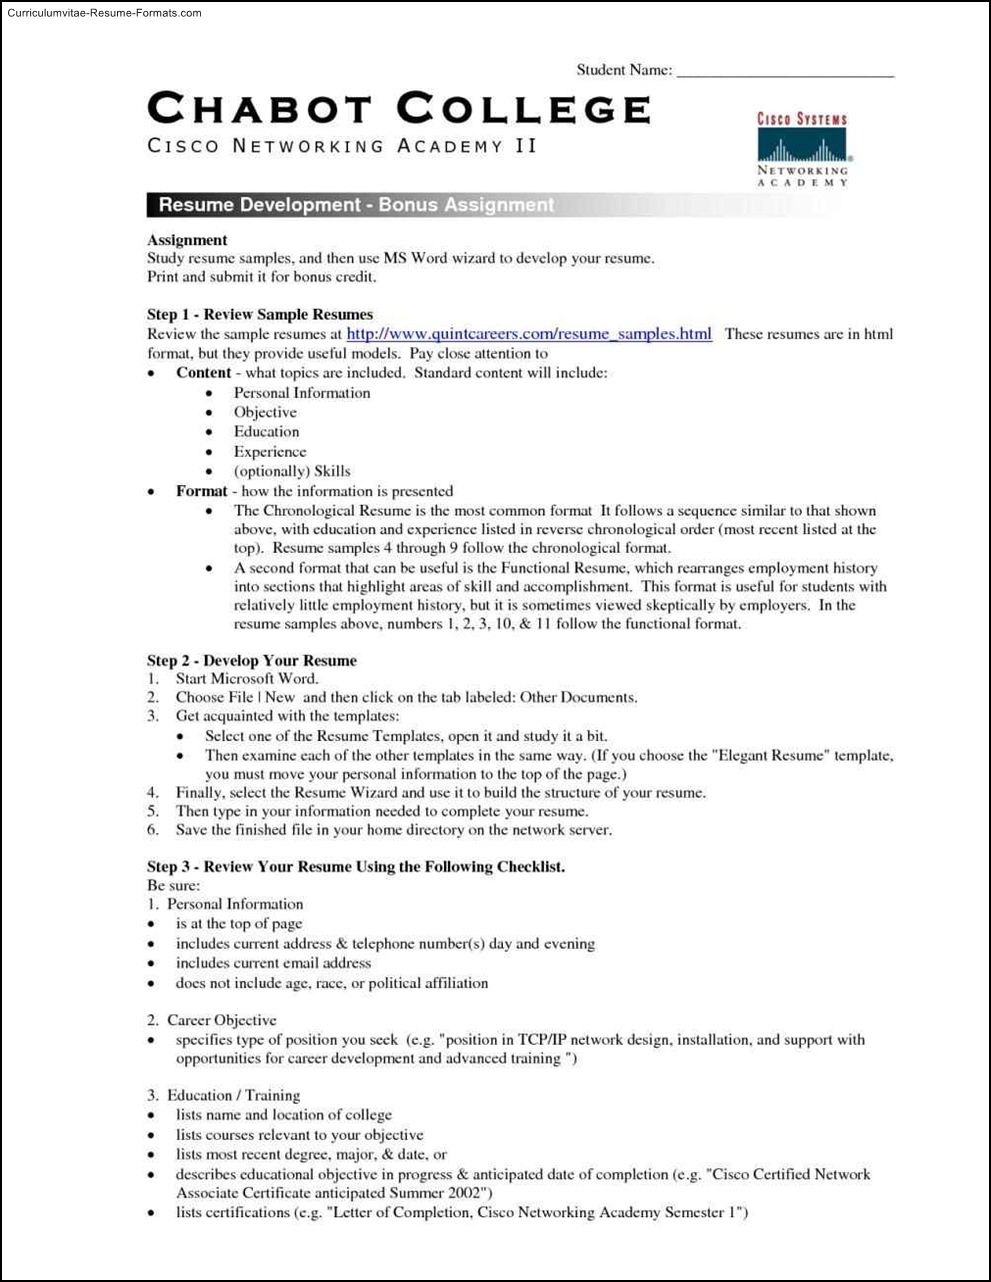 Free Resume Templates For College Students Free Samples